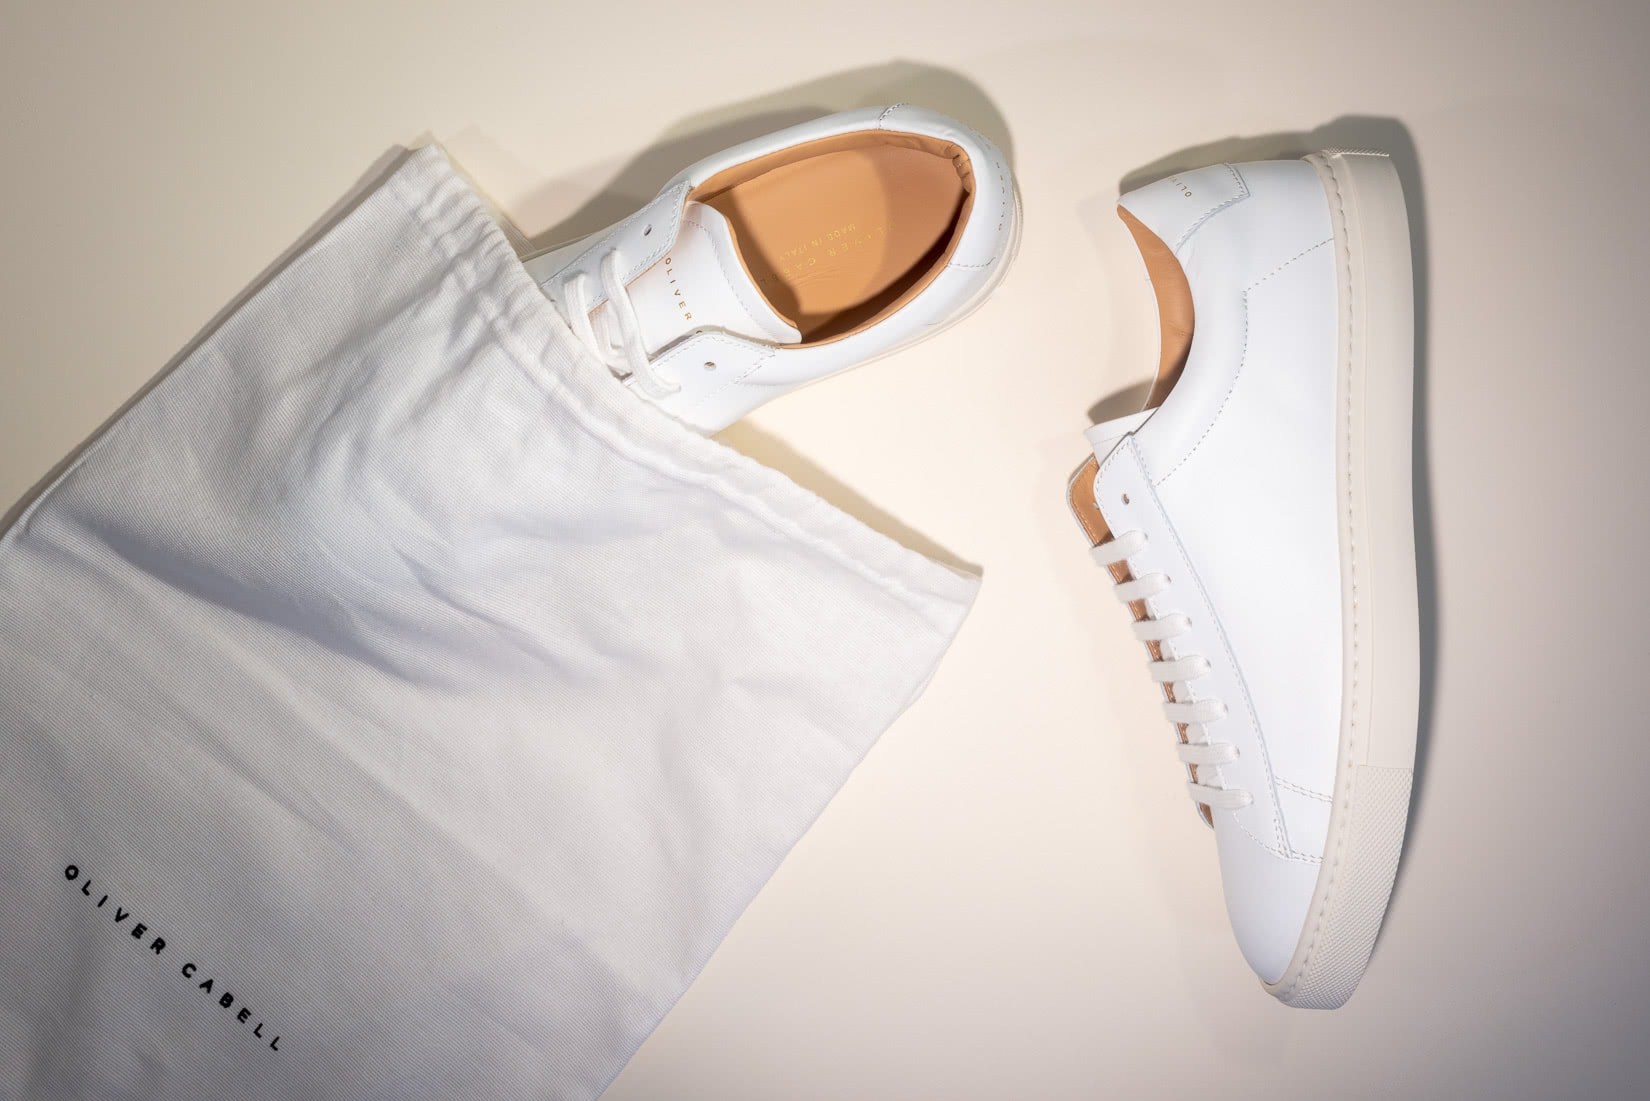 oliver cabell reseña zapatillas bajas 1 unboxing - Luxe Digital